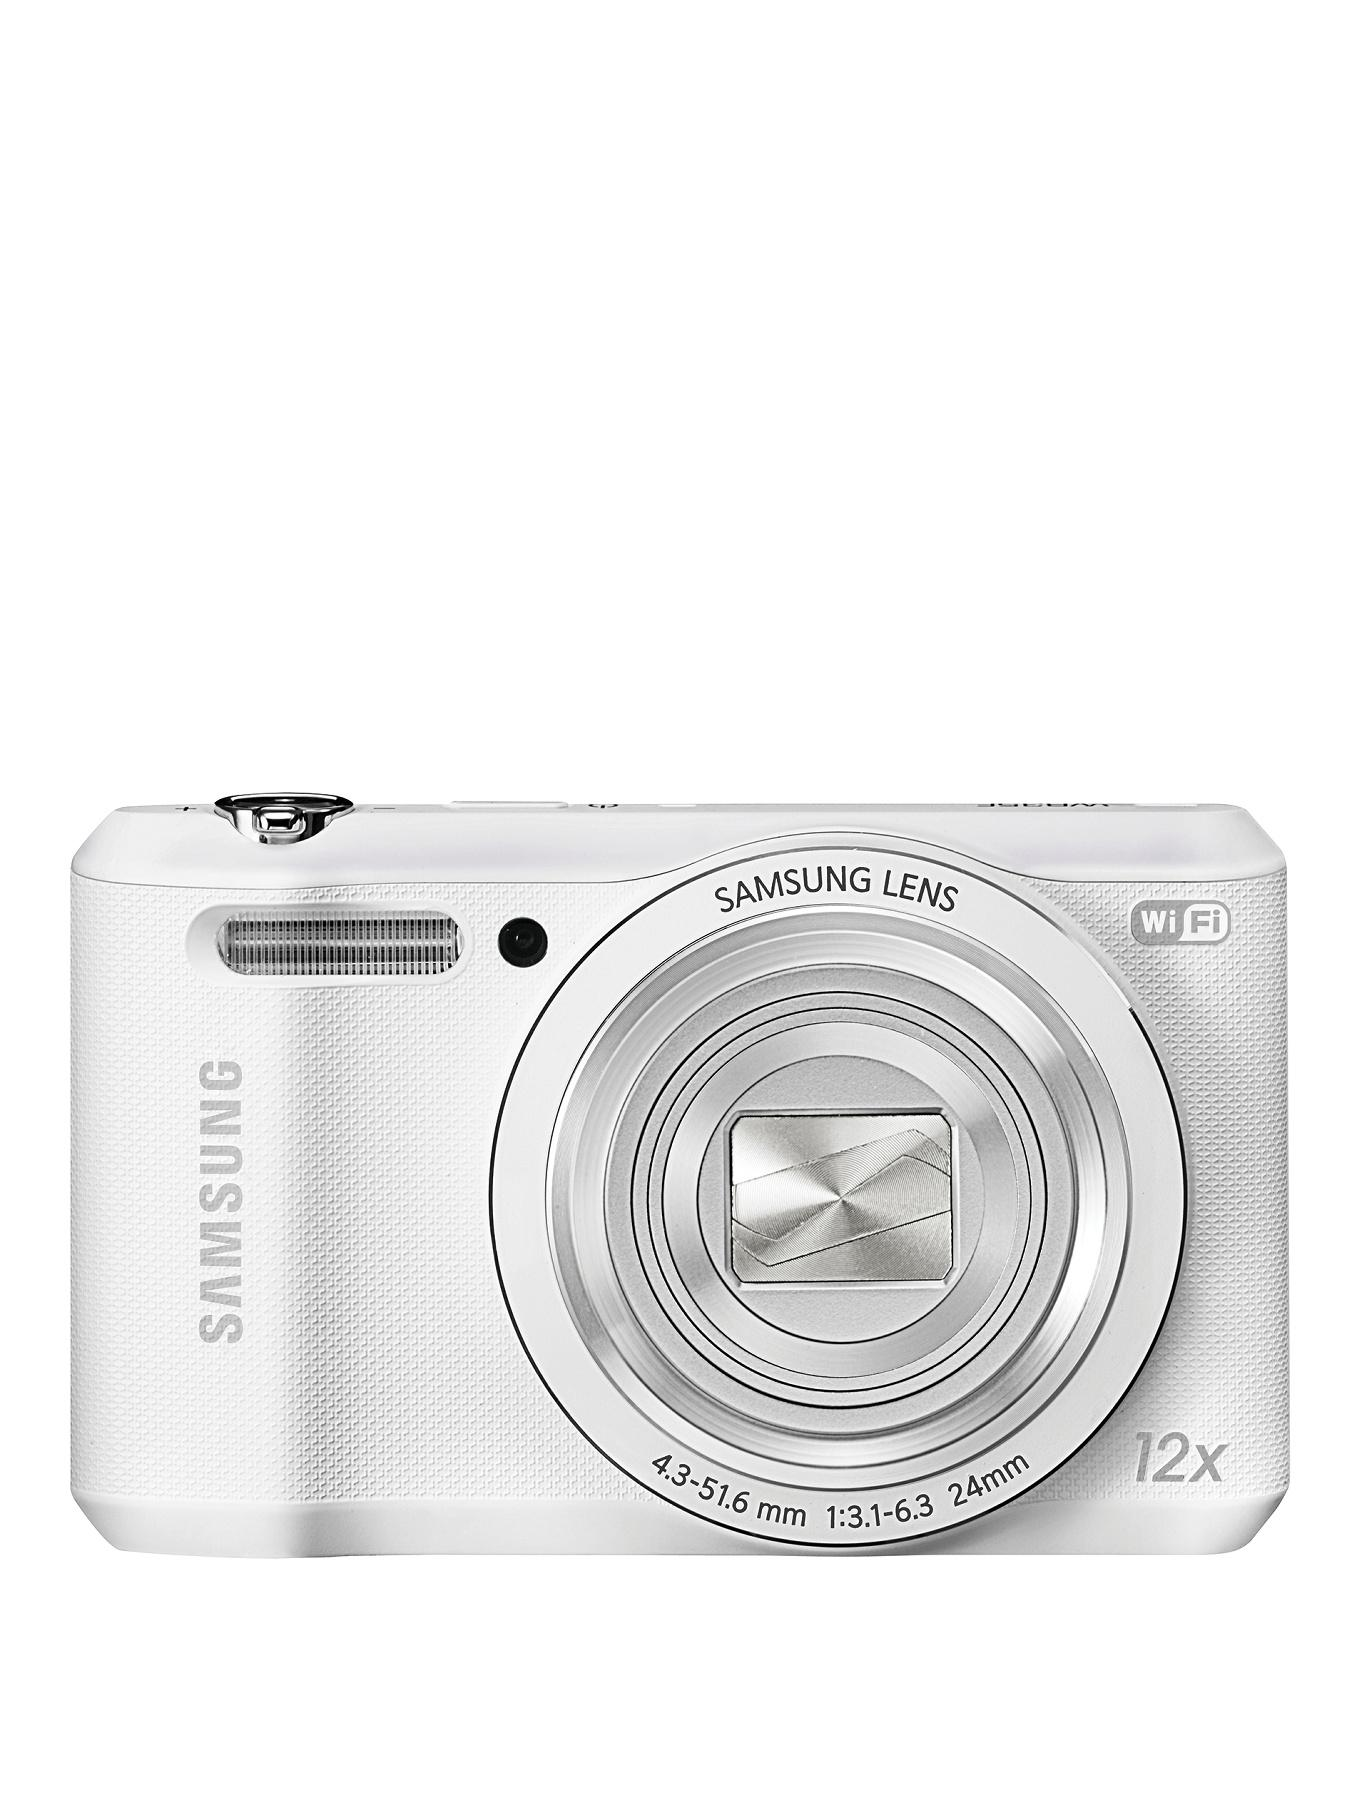 WB35F 16.2 Megapixel Digital Smart Camera, White,Black,Purple